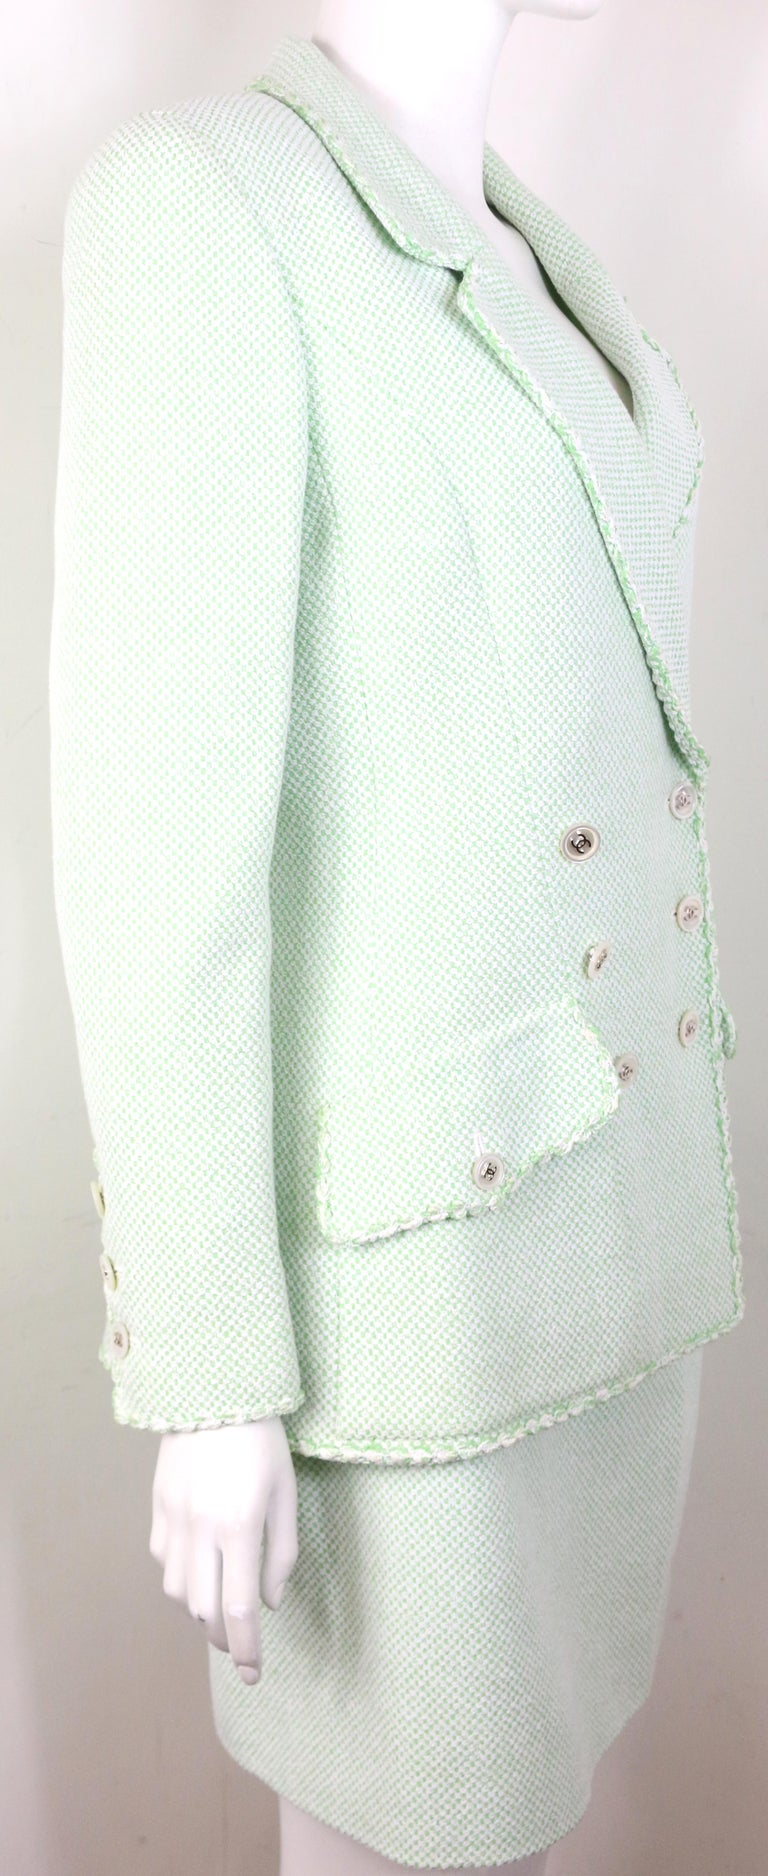 Gray Chanel White/Green Cotton and Wool Double-Breasted Jacket and Skirt Ensemble  For Sale